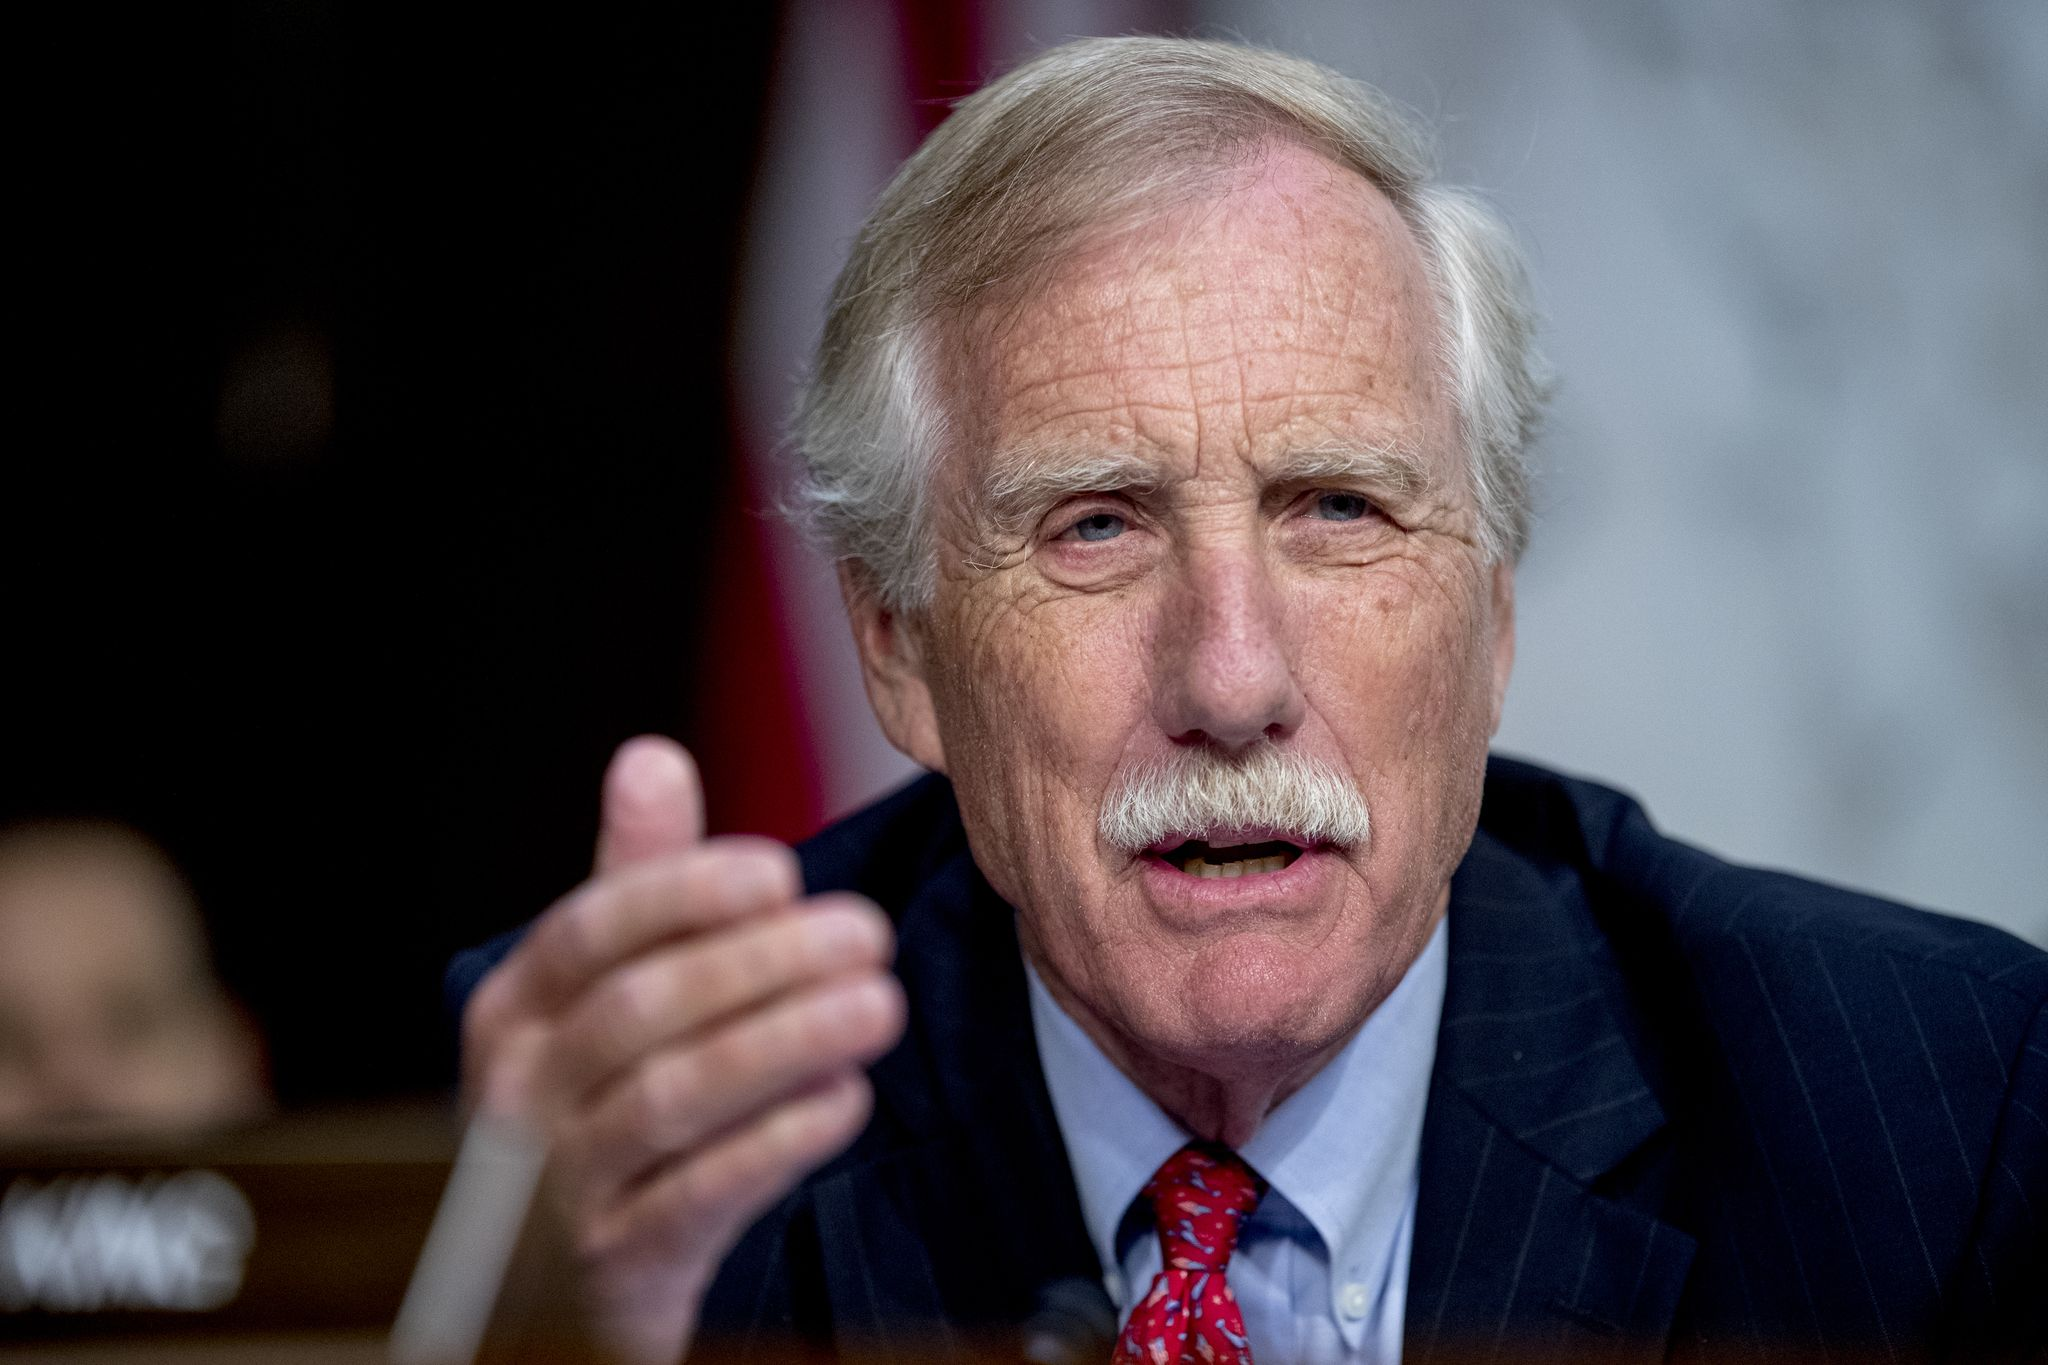 Sen. Angus King on Trump impeachment: 'We may get there, but we're not there now'